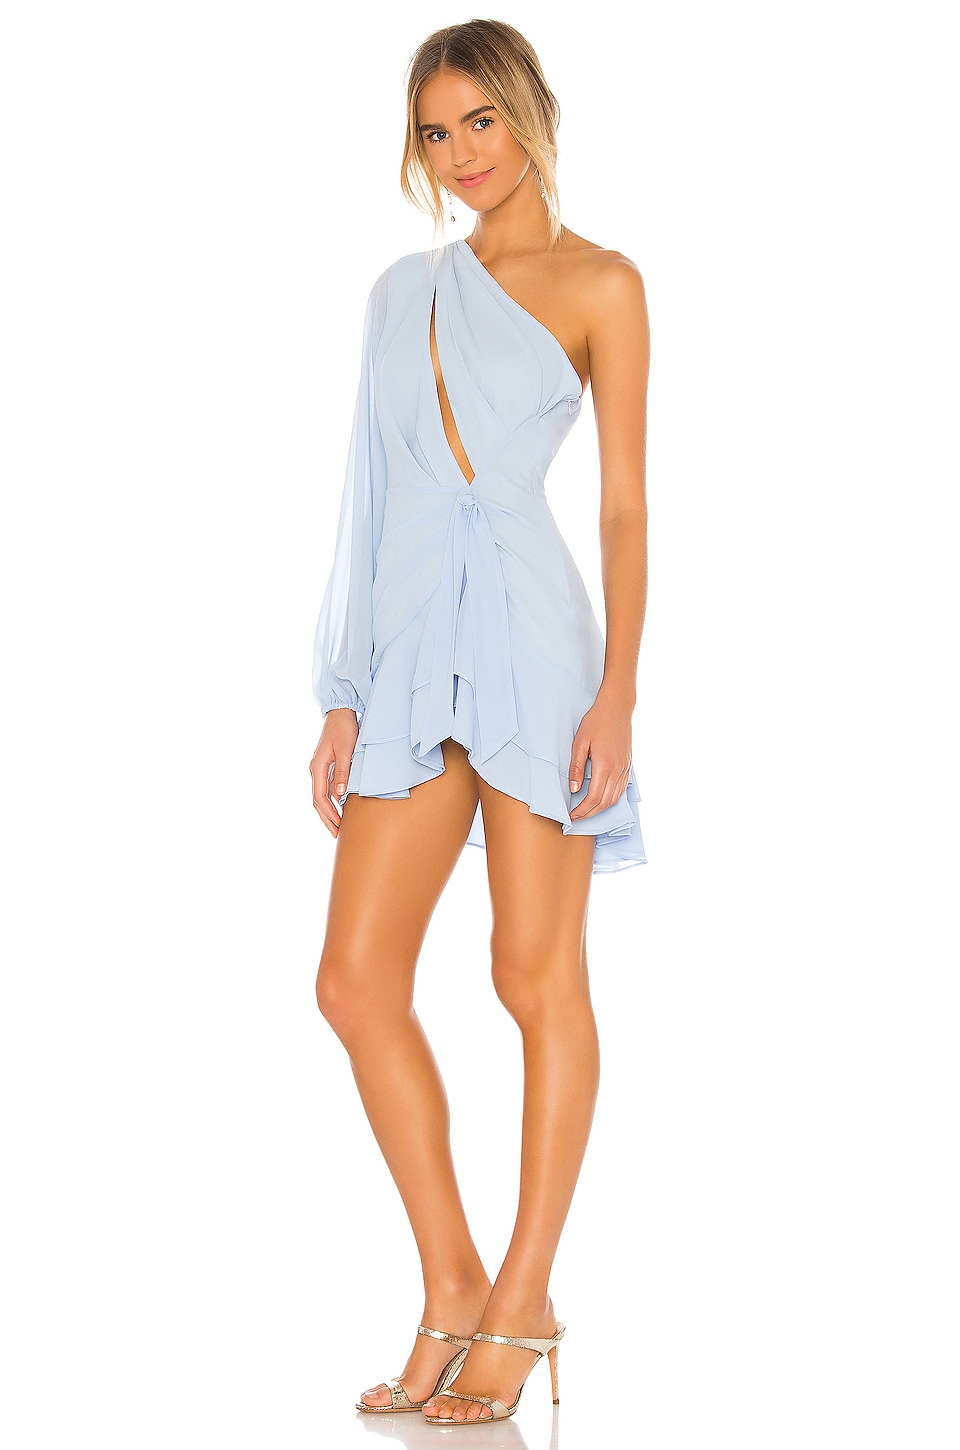 x REVOLVE Sunny Mini Dress, view 3, click to view large image.